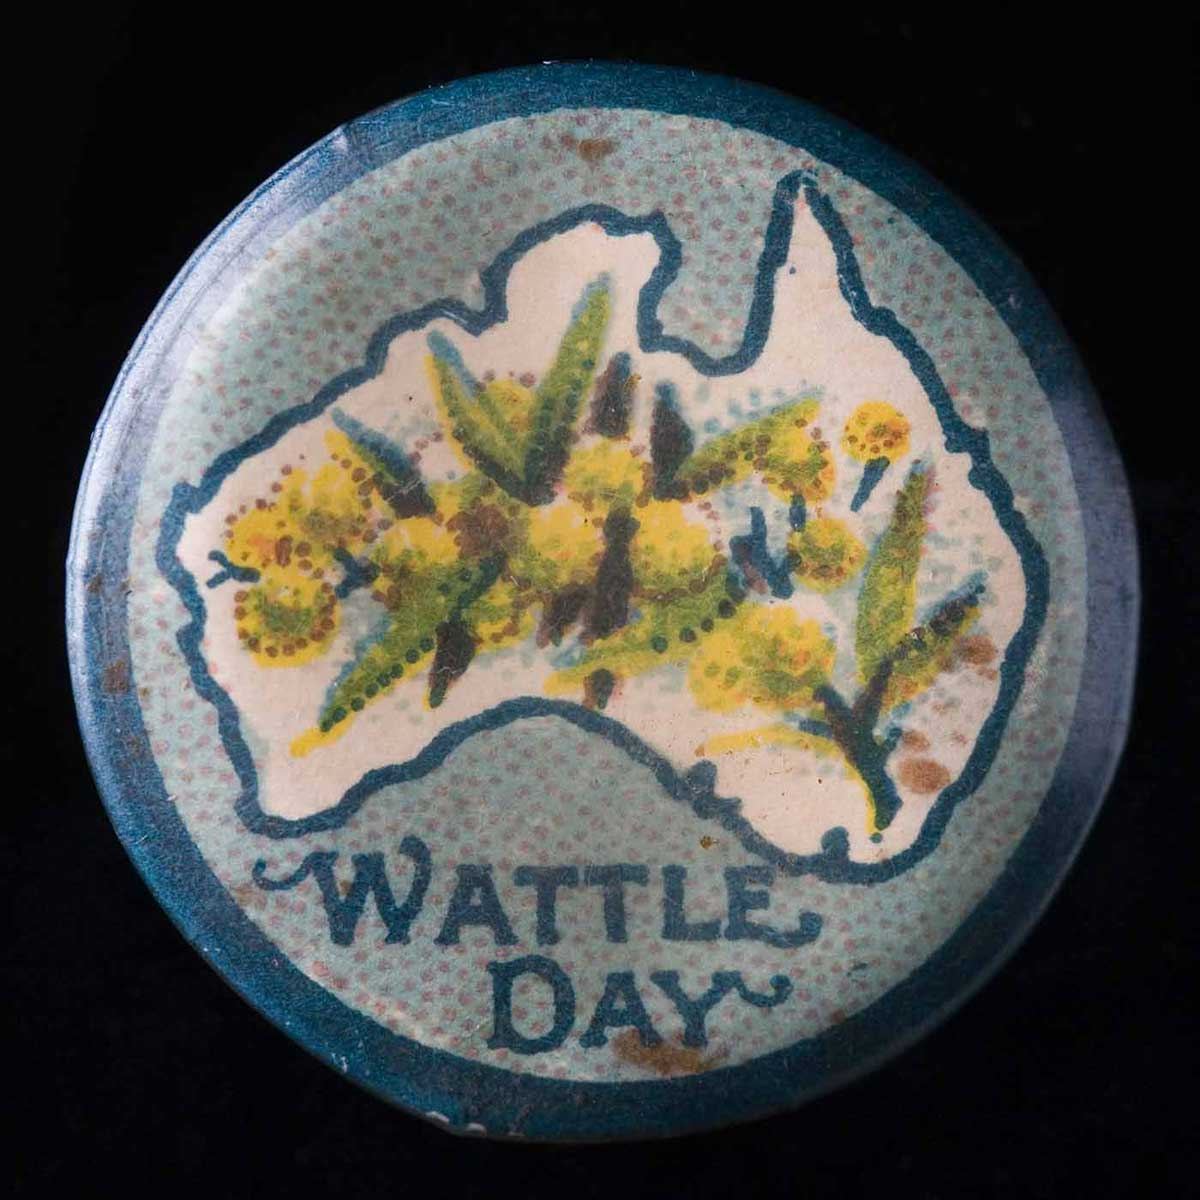 Circular badge with a blue border and background and the words 'Wattle Day' written underneath the outline of a map of Australia. Yellow wattle blossoms appear inside the map. - click to view larger image